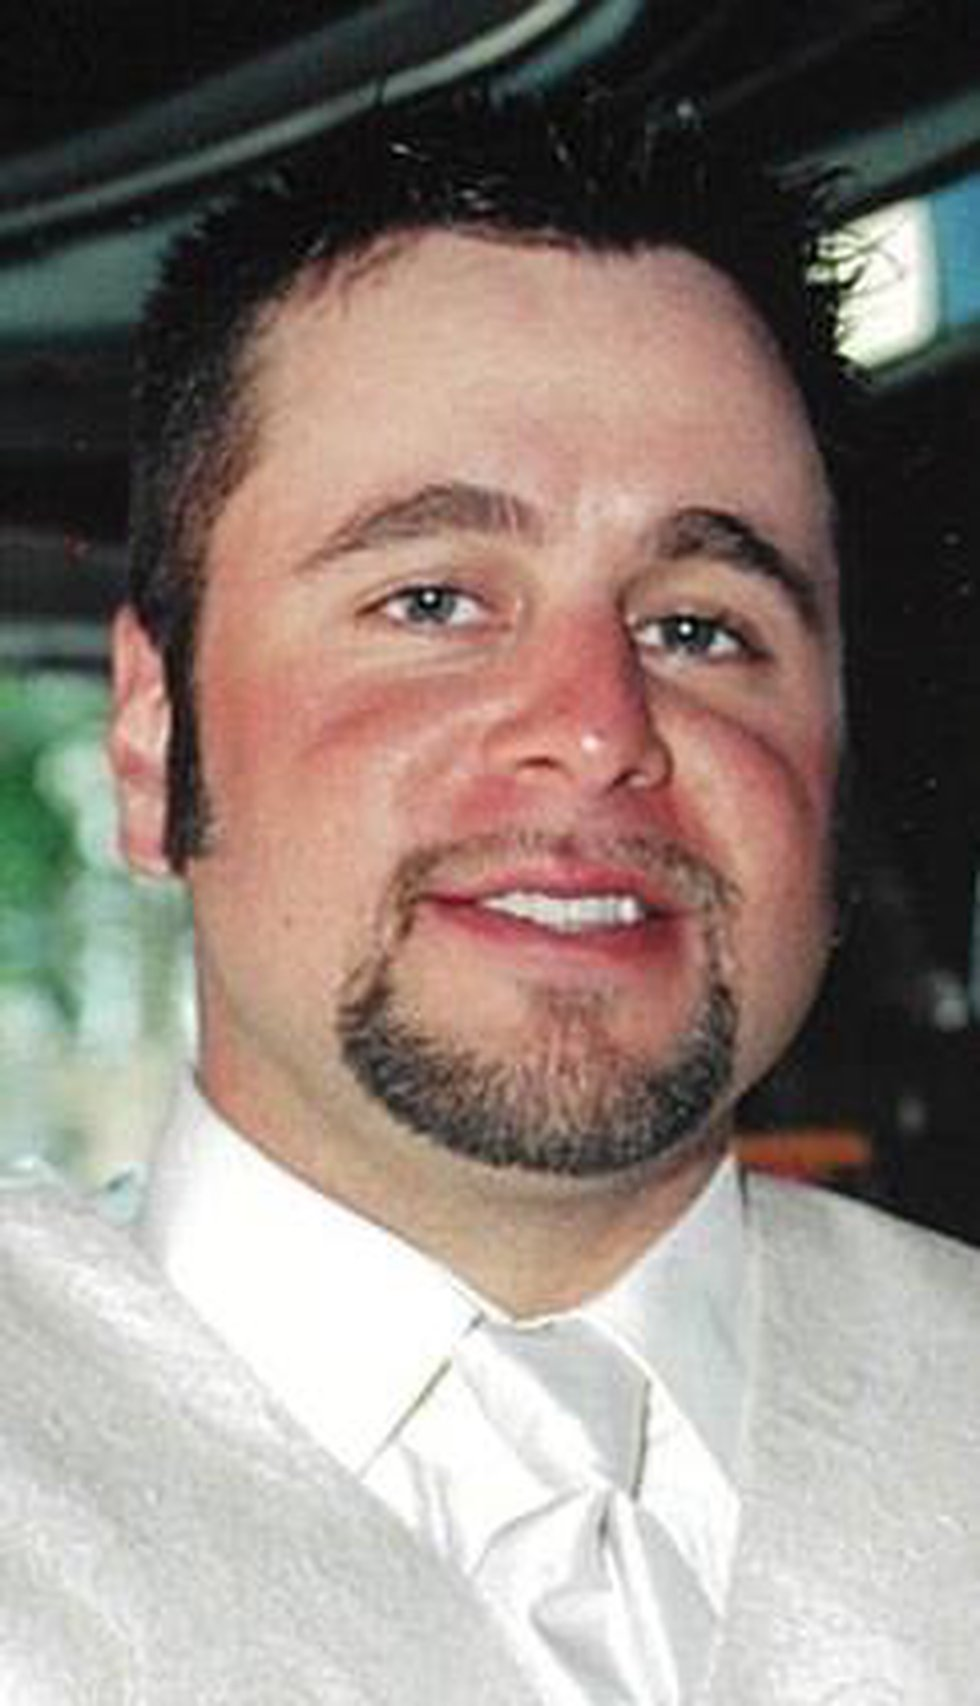 Jeremy J. Mullin, 42, of Ontario, NY, formerly of Lowville, passed away on Tuesday, July 20,...